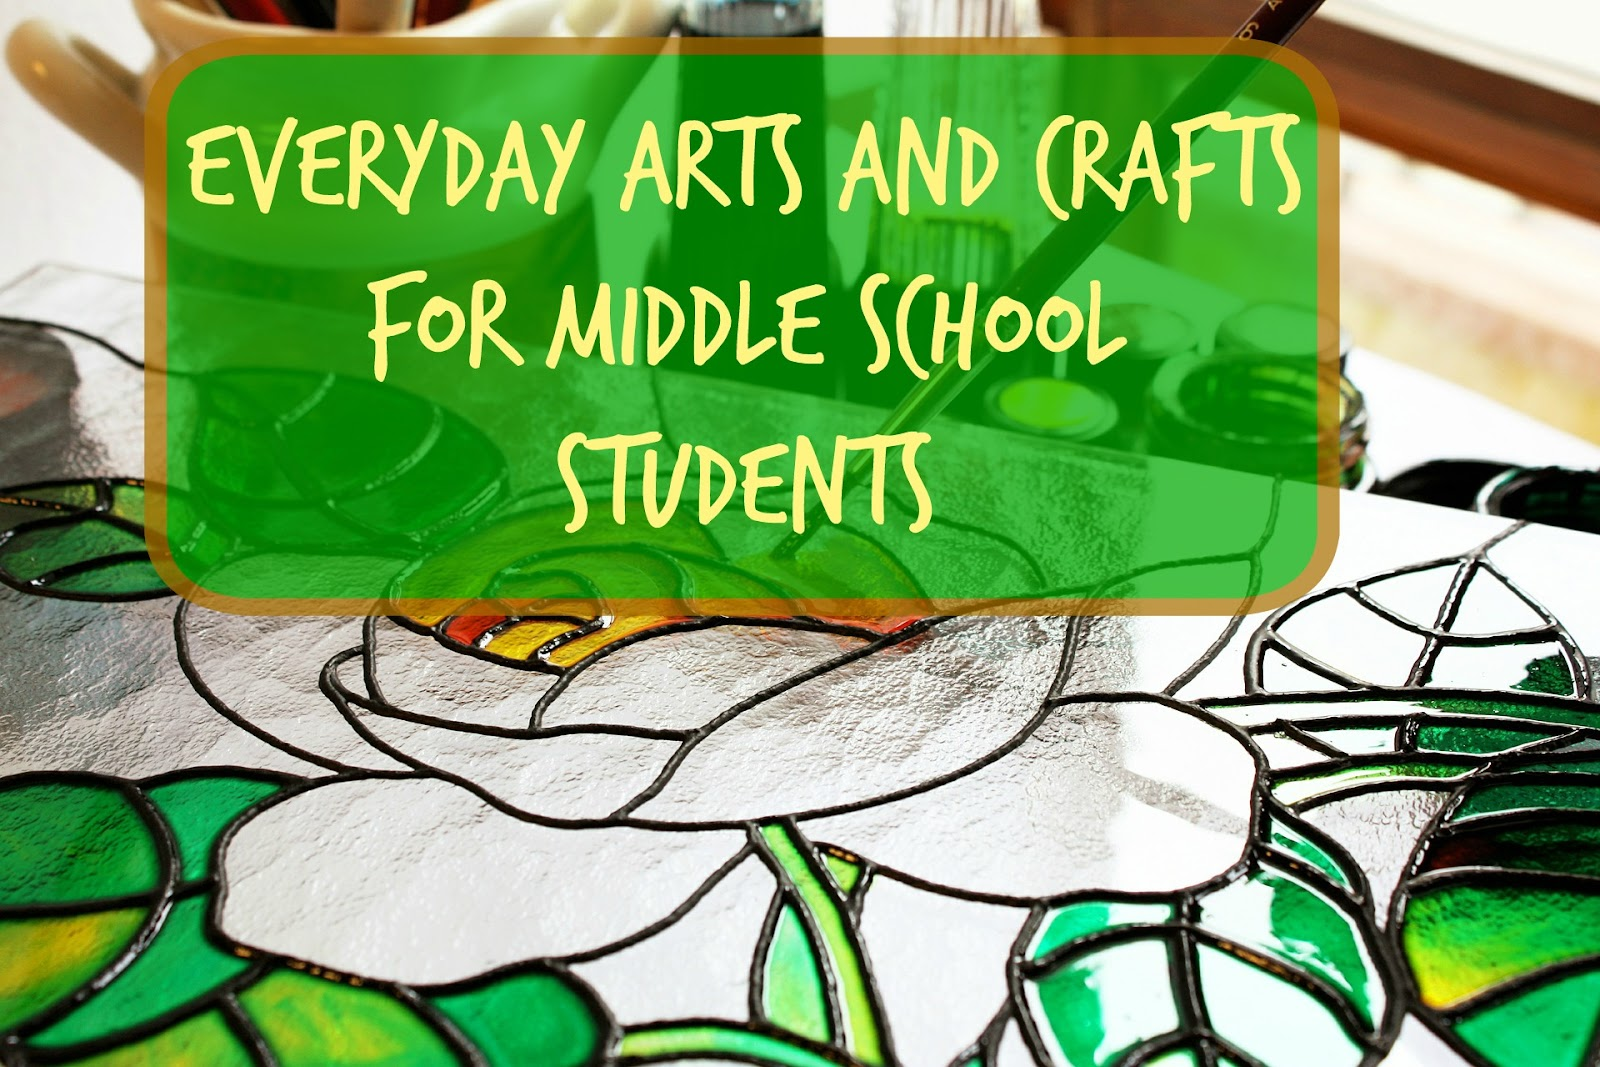 Everyday Arts And Crafts For Middle School Students